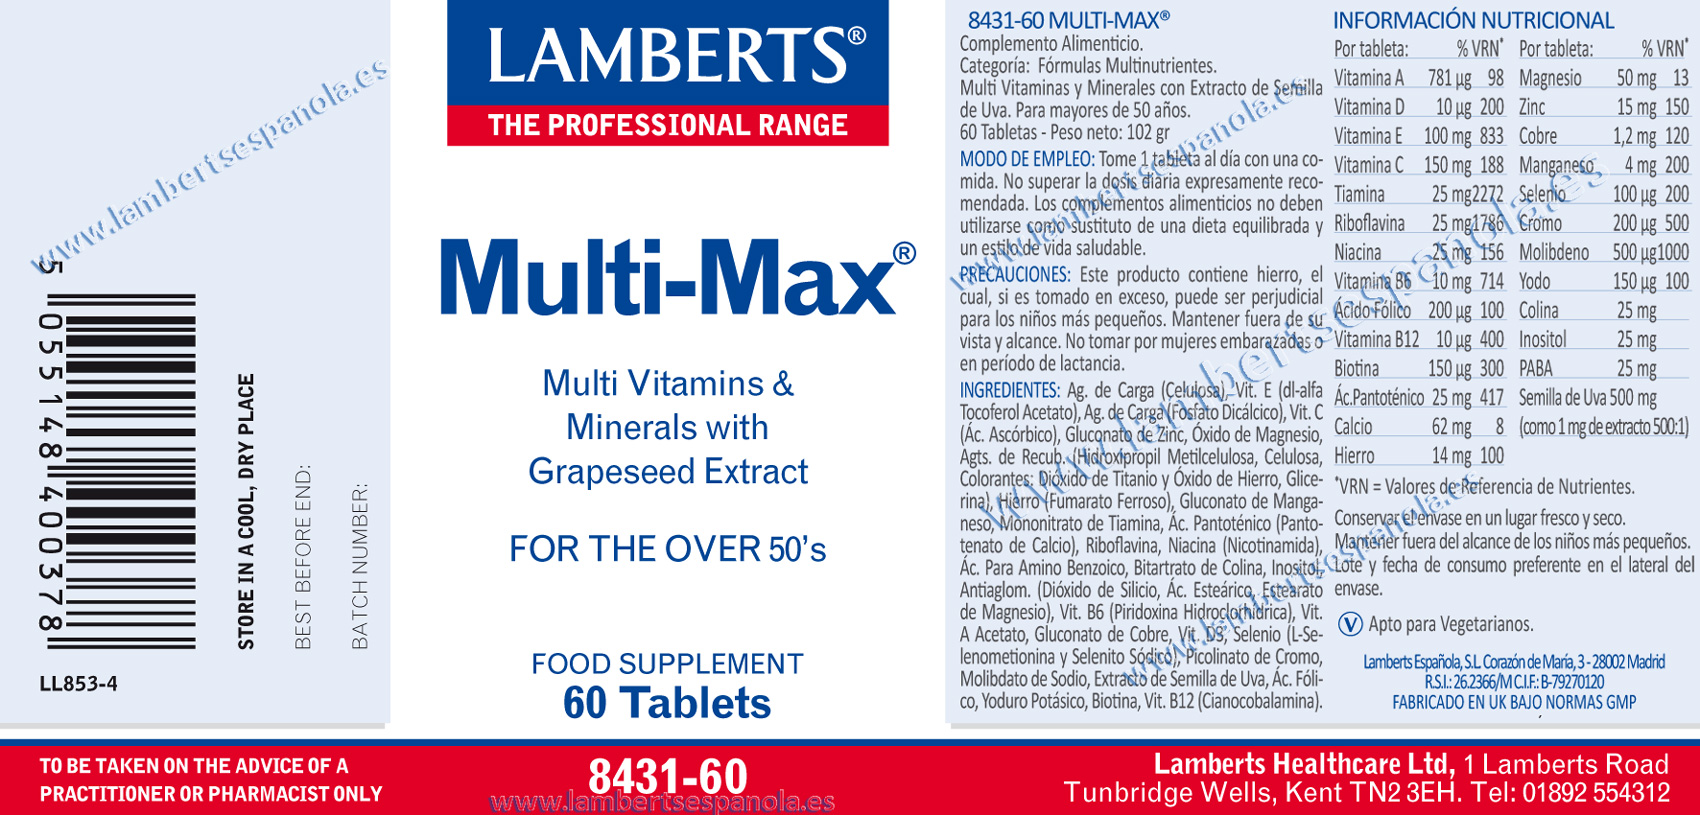 Multimax de Lamberts